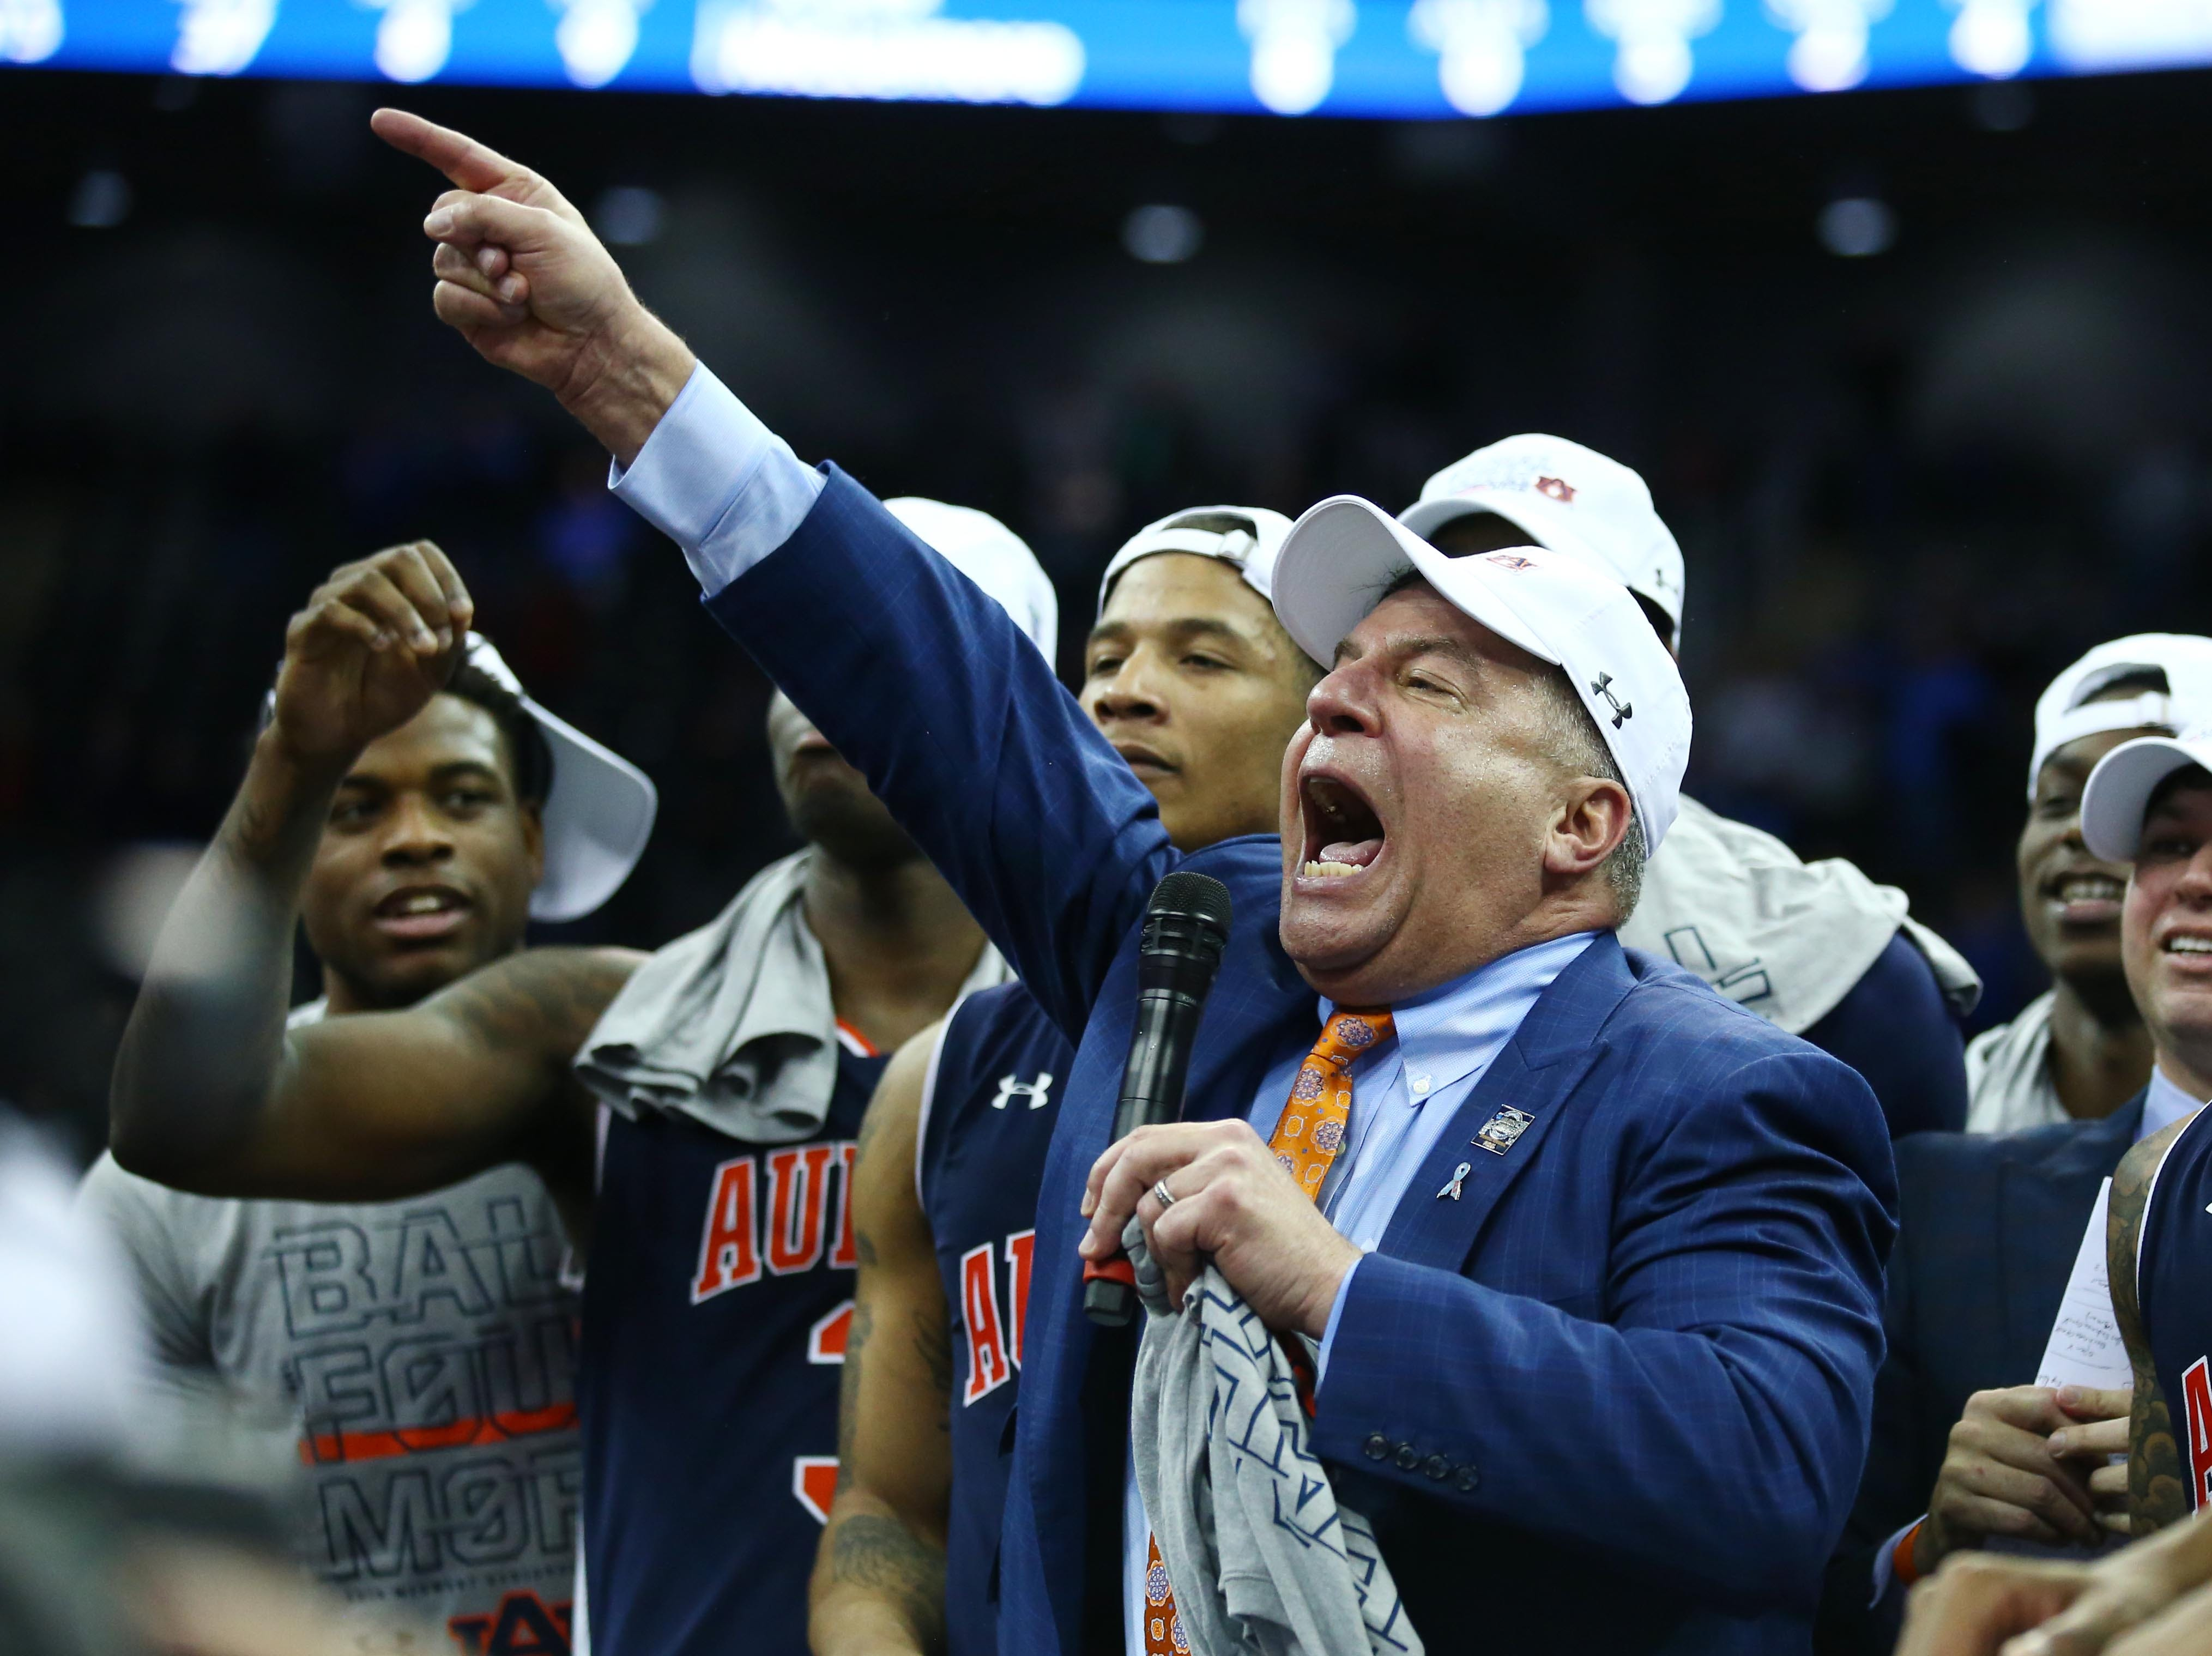 Mar 31, 2019; Kansas City, MO, United States; Auburn Tigers head coach Bruce Pearl speaks to the crowd after defeating the Kentucky Wildcats in the championship game of the midwest regional of the 2019 NCAA Tournament at Sprint Center. Mandatory Credit: Jay Biggerstaff-USA TODAY Sports